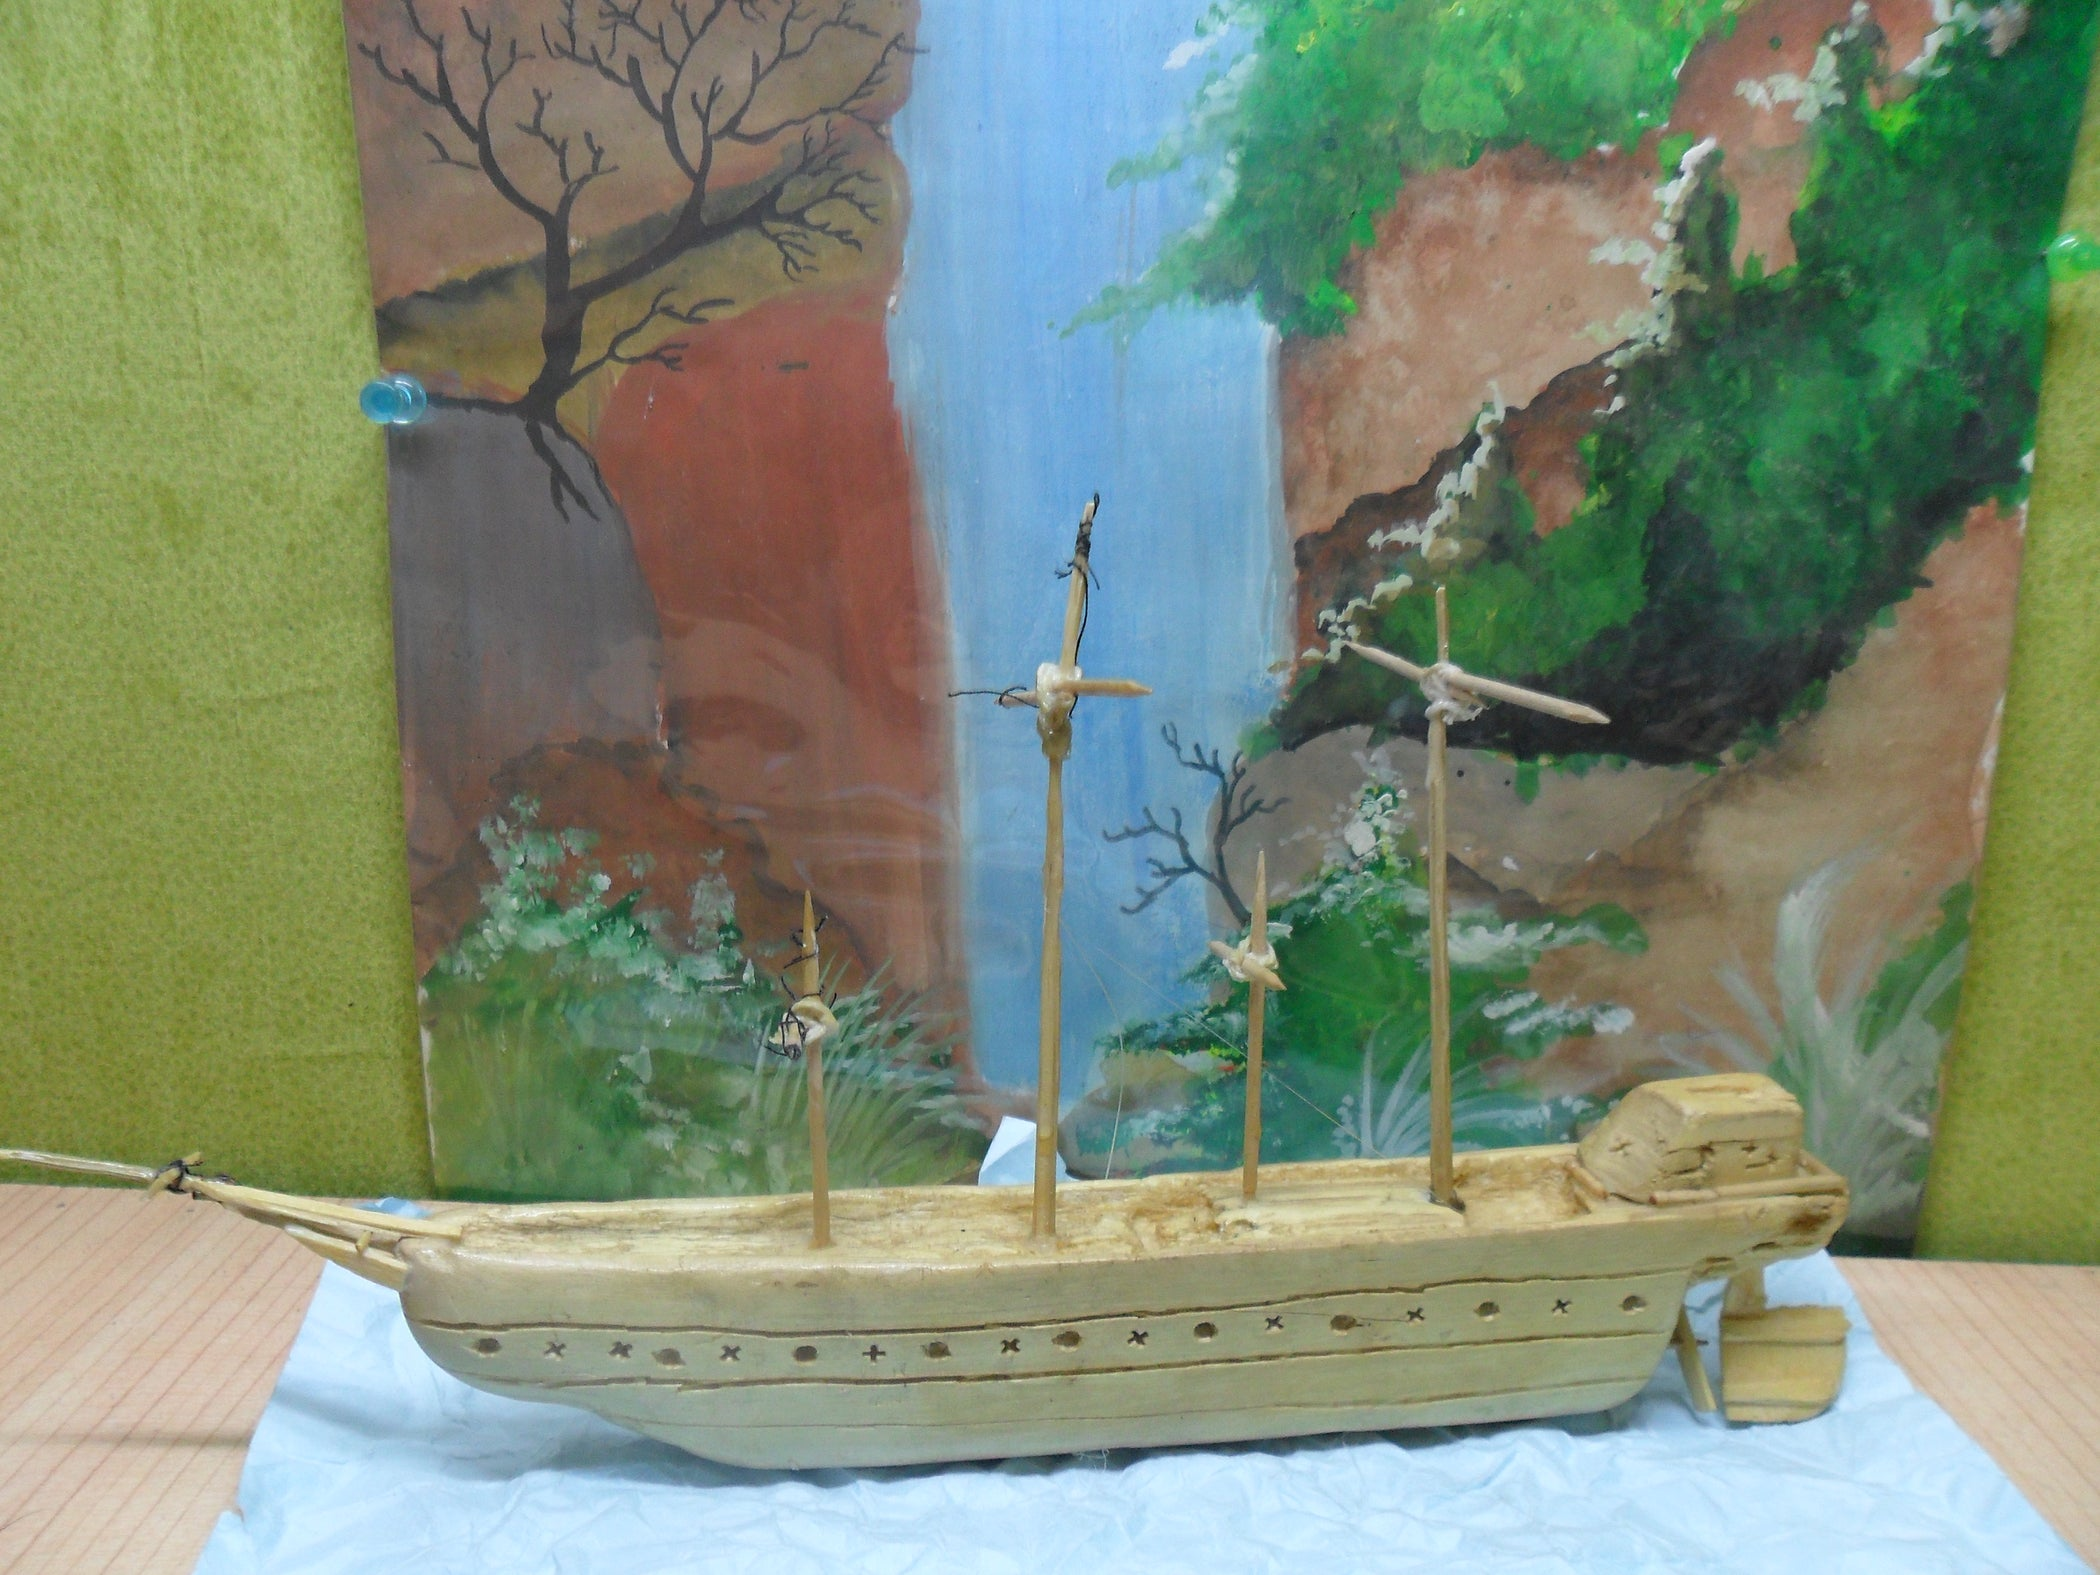 Wooden Carved Ship 7 Steps Sailing Diagram Tall Ships Pinterest